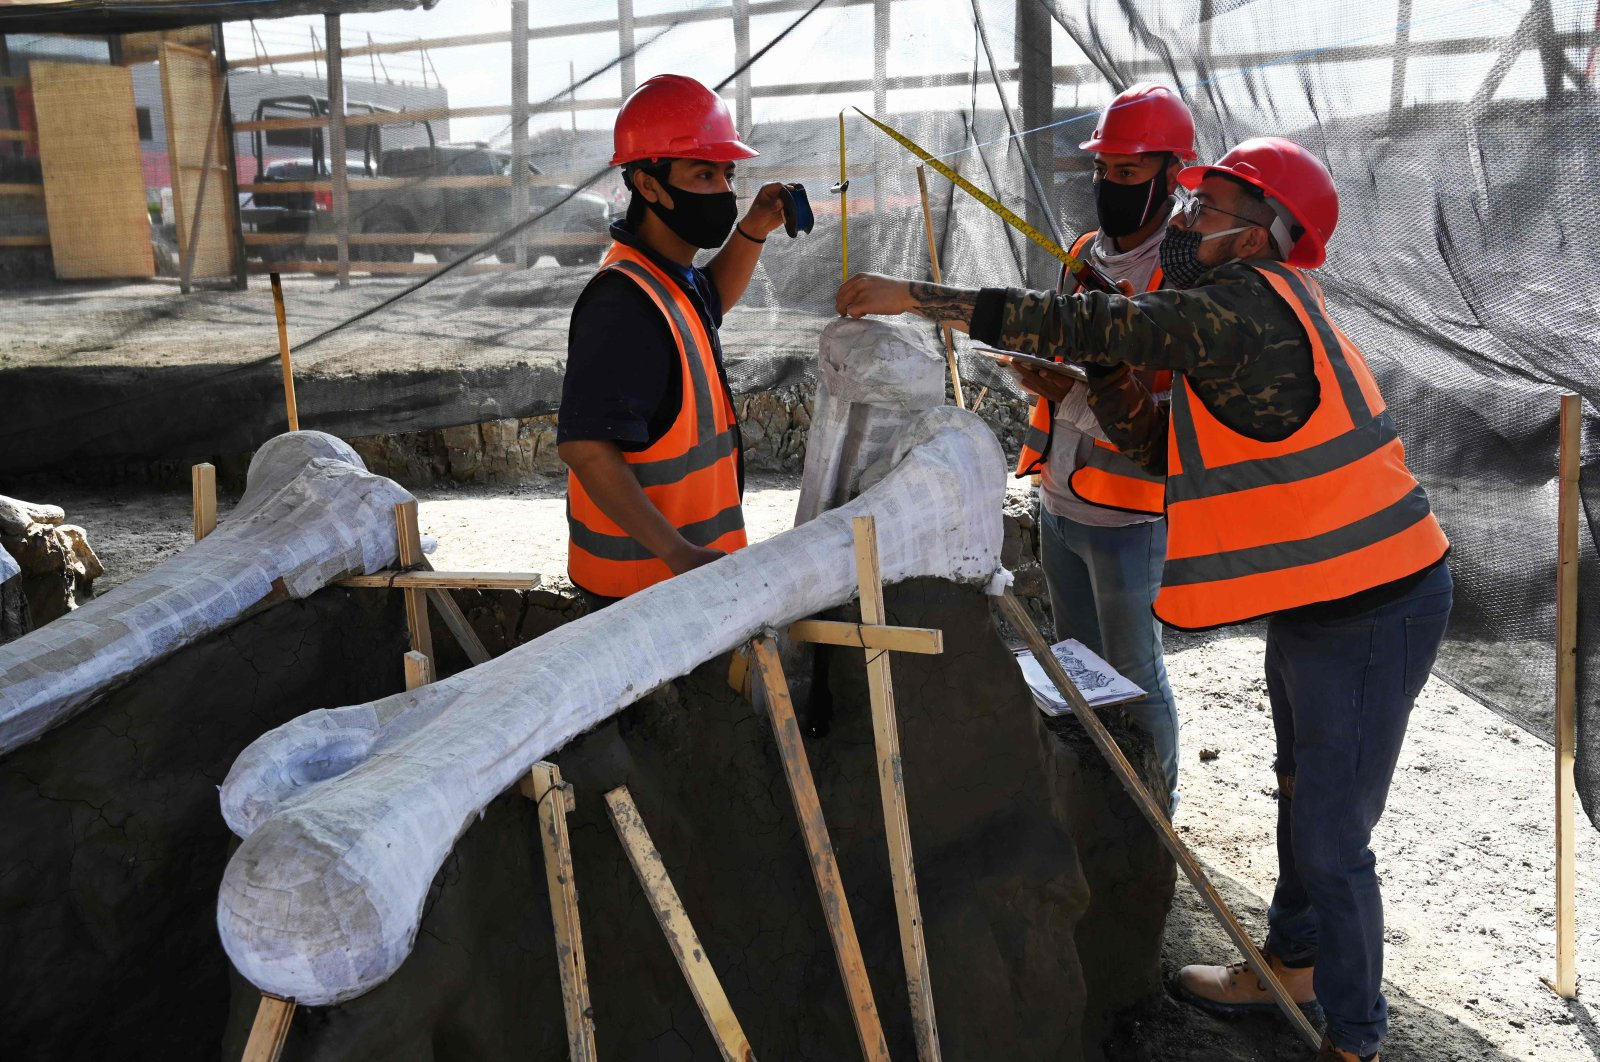 Paleontologists of the National Institute of Anthropology work on the preservation of the skeletons of mammoths found during a recent excavation, at the Santa Lucia Military Base in the Municipality of Zumpango, Mexico, on Sept. 8, 2020. (AFP Photo)